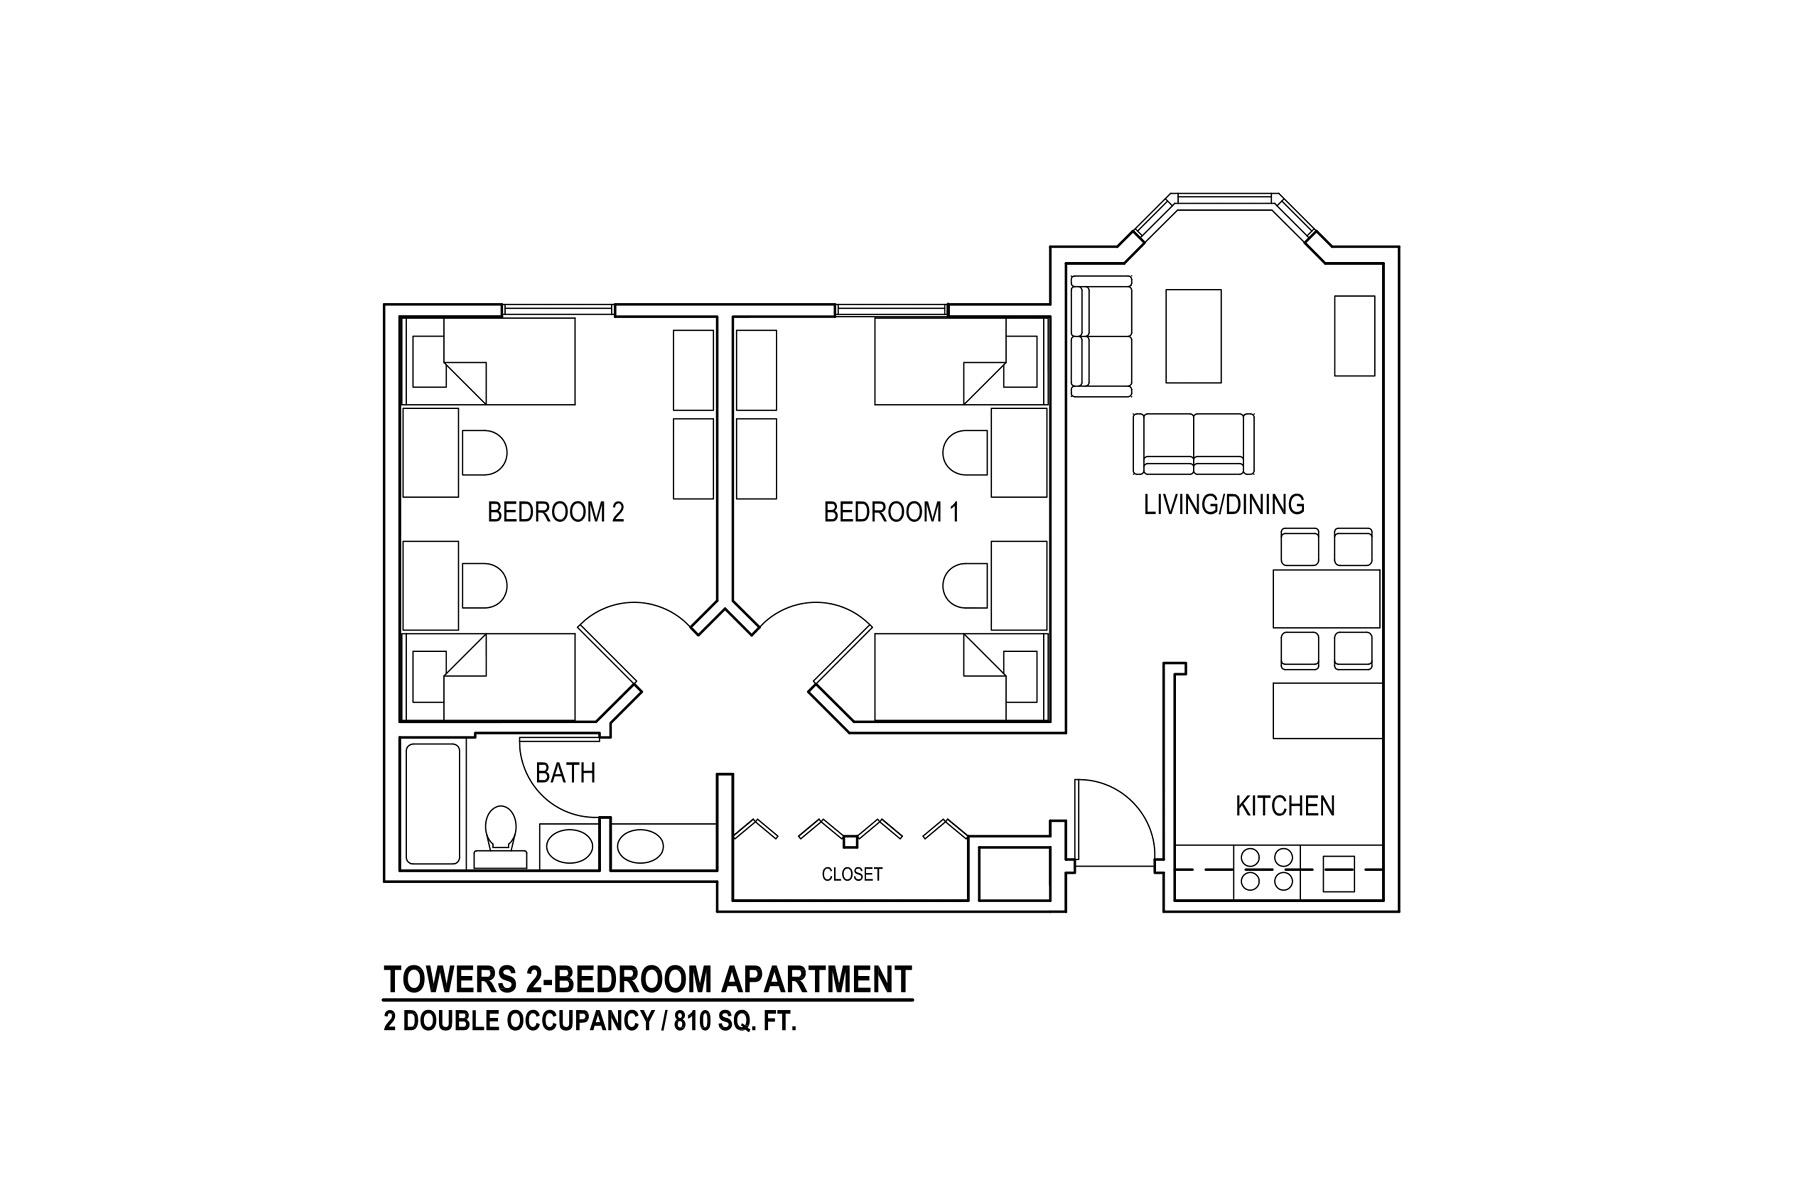 Towers 2-Bedroom Apartment 2 Double Occupancy / 810 sq. ft